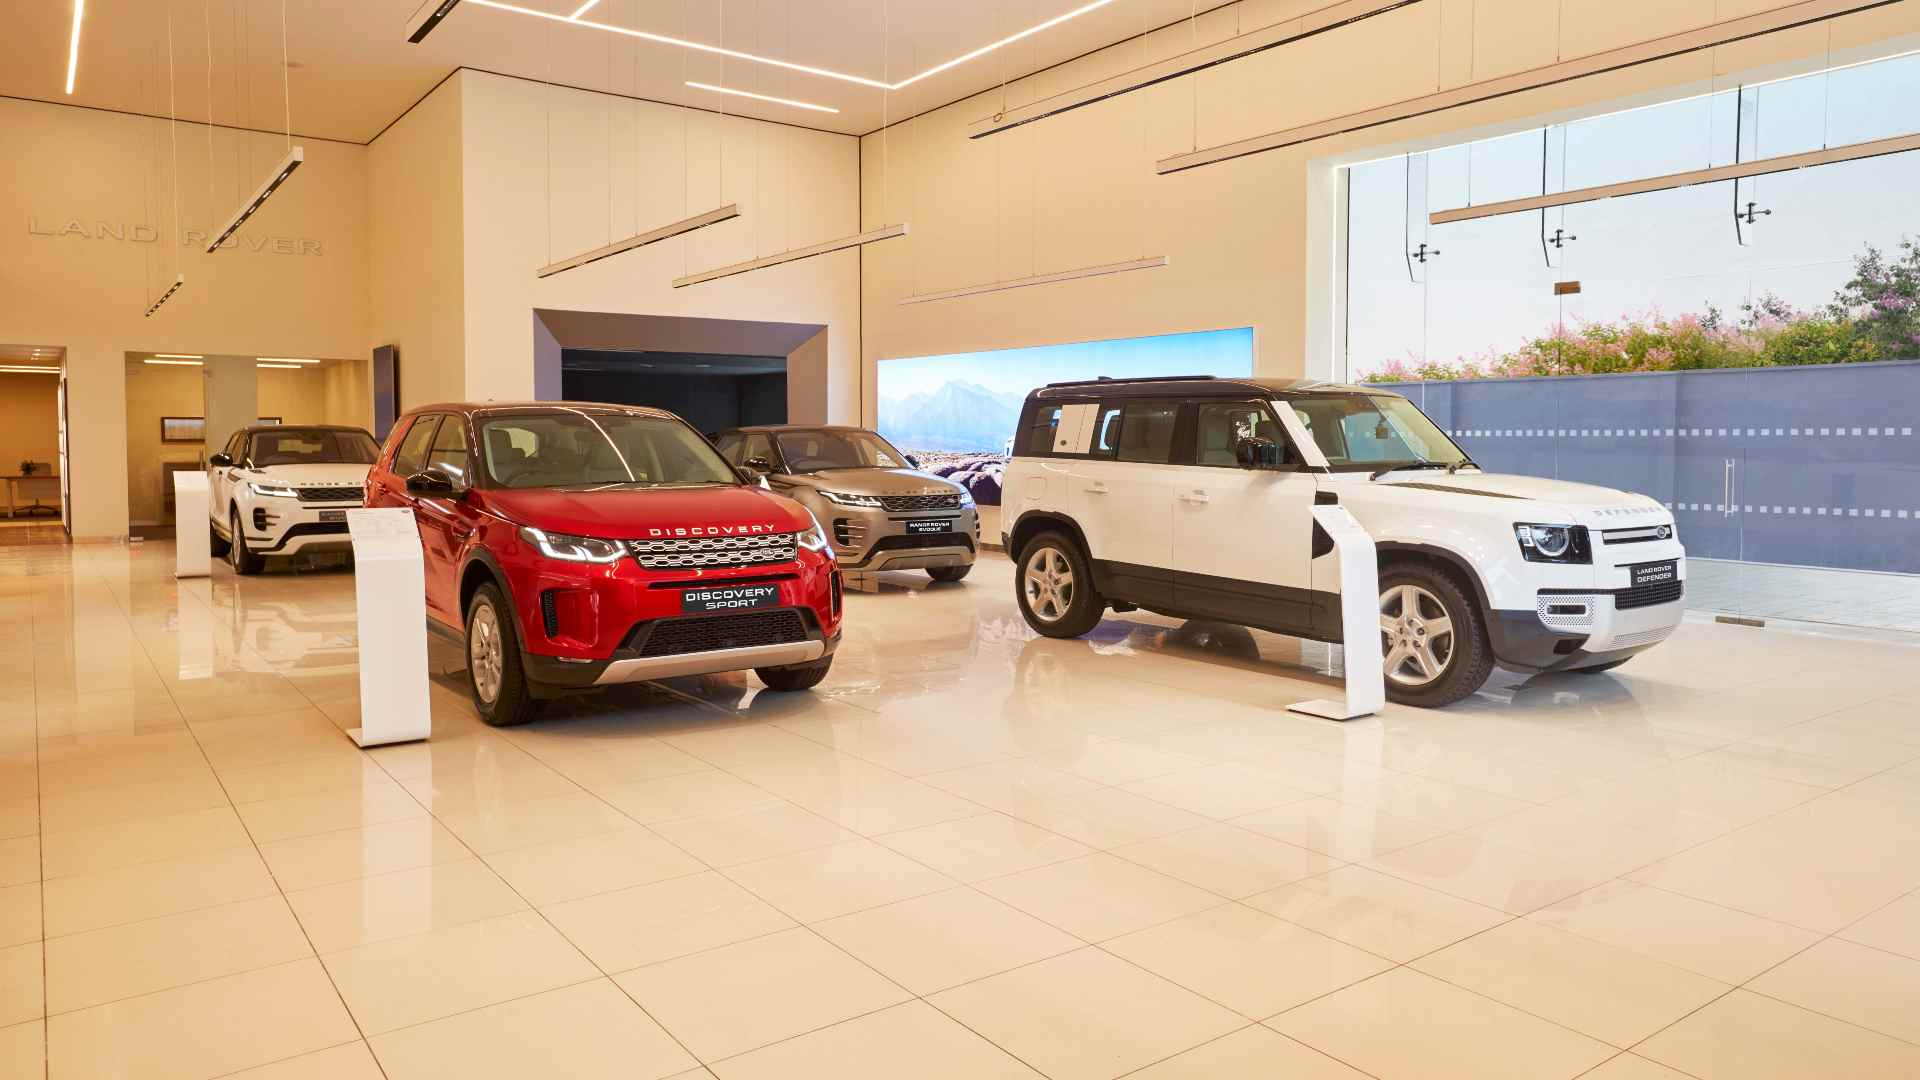 Jaguar Land Rover India lines up 10 model launches and portfolio updates for FY22- Technology News, Gadgetclock